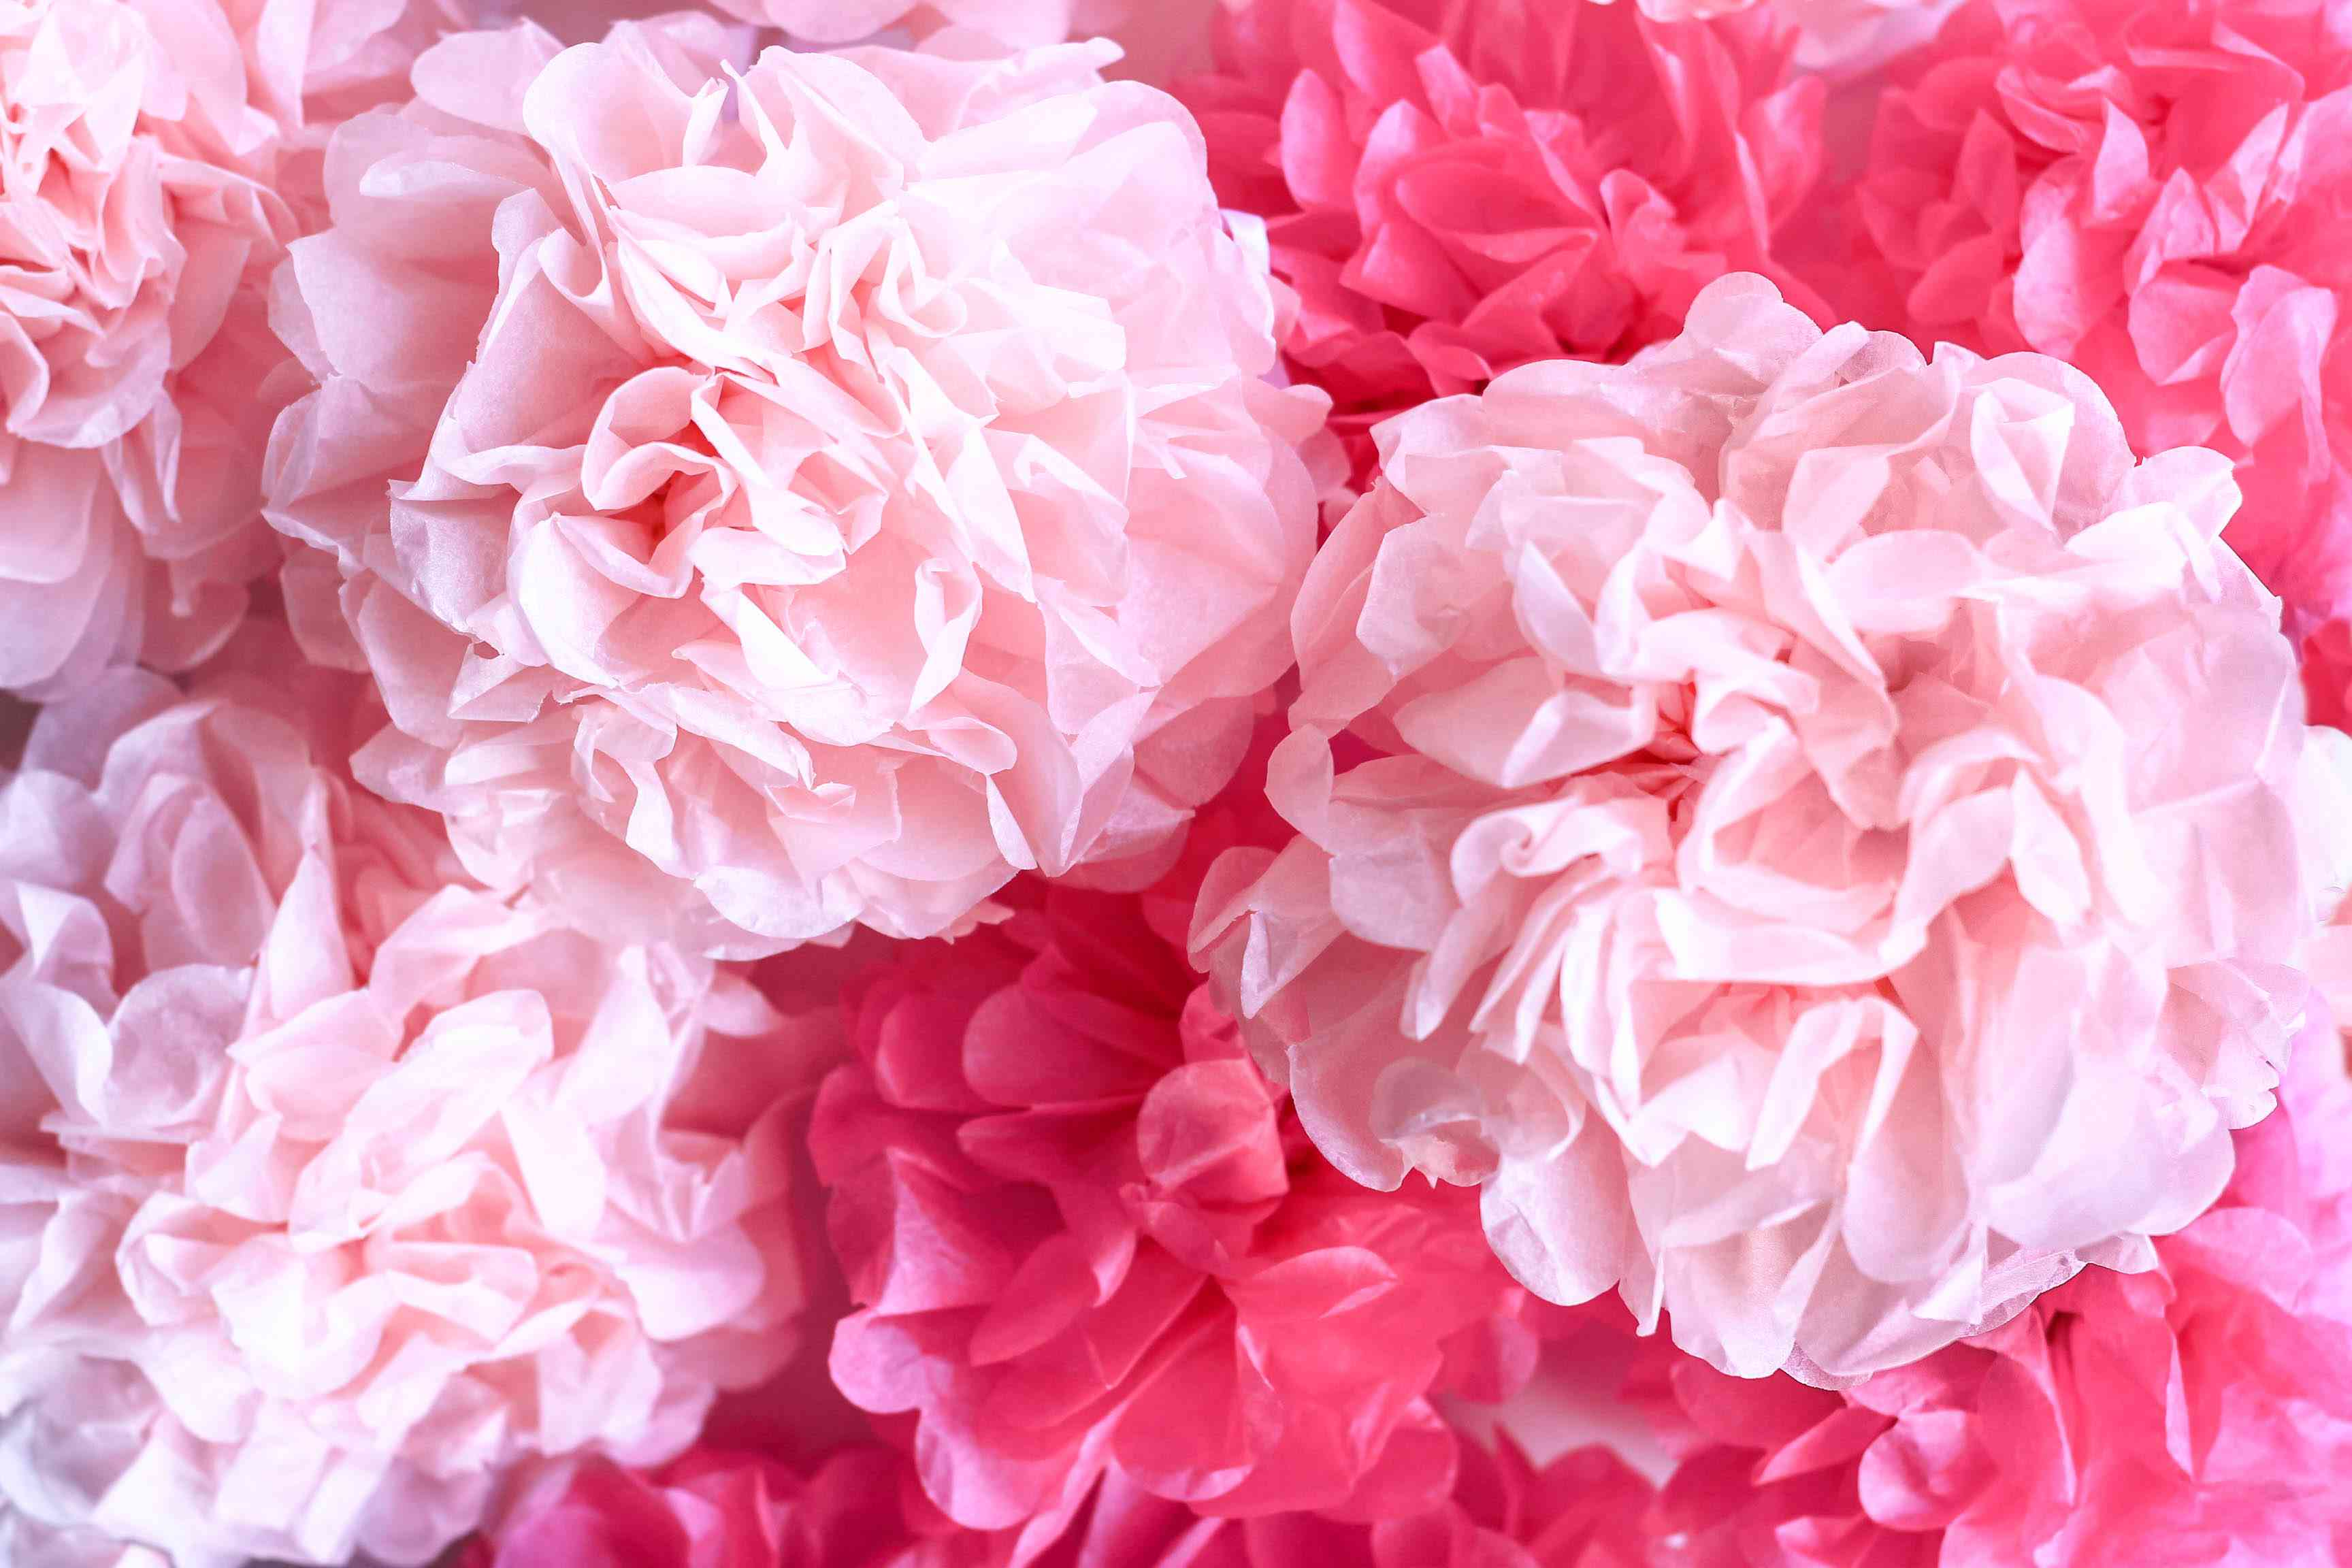 Tissue paper flowers, close up